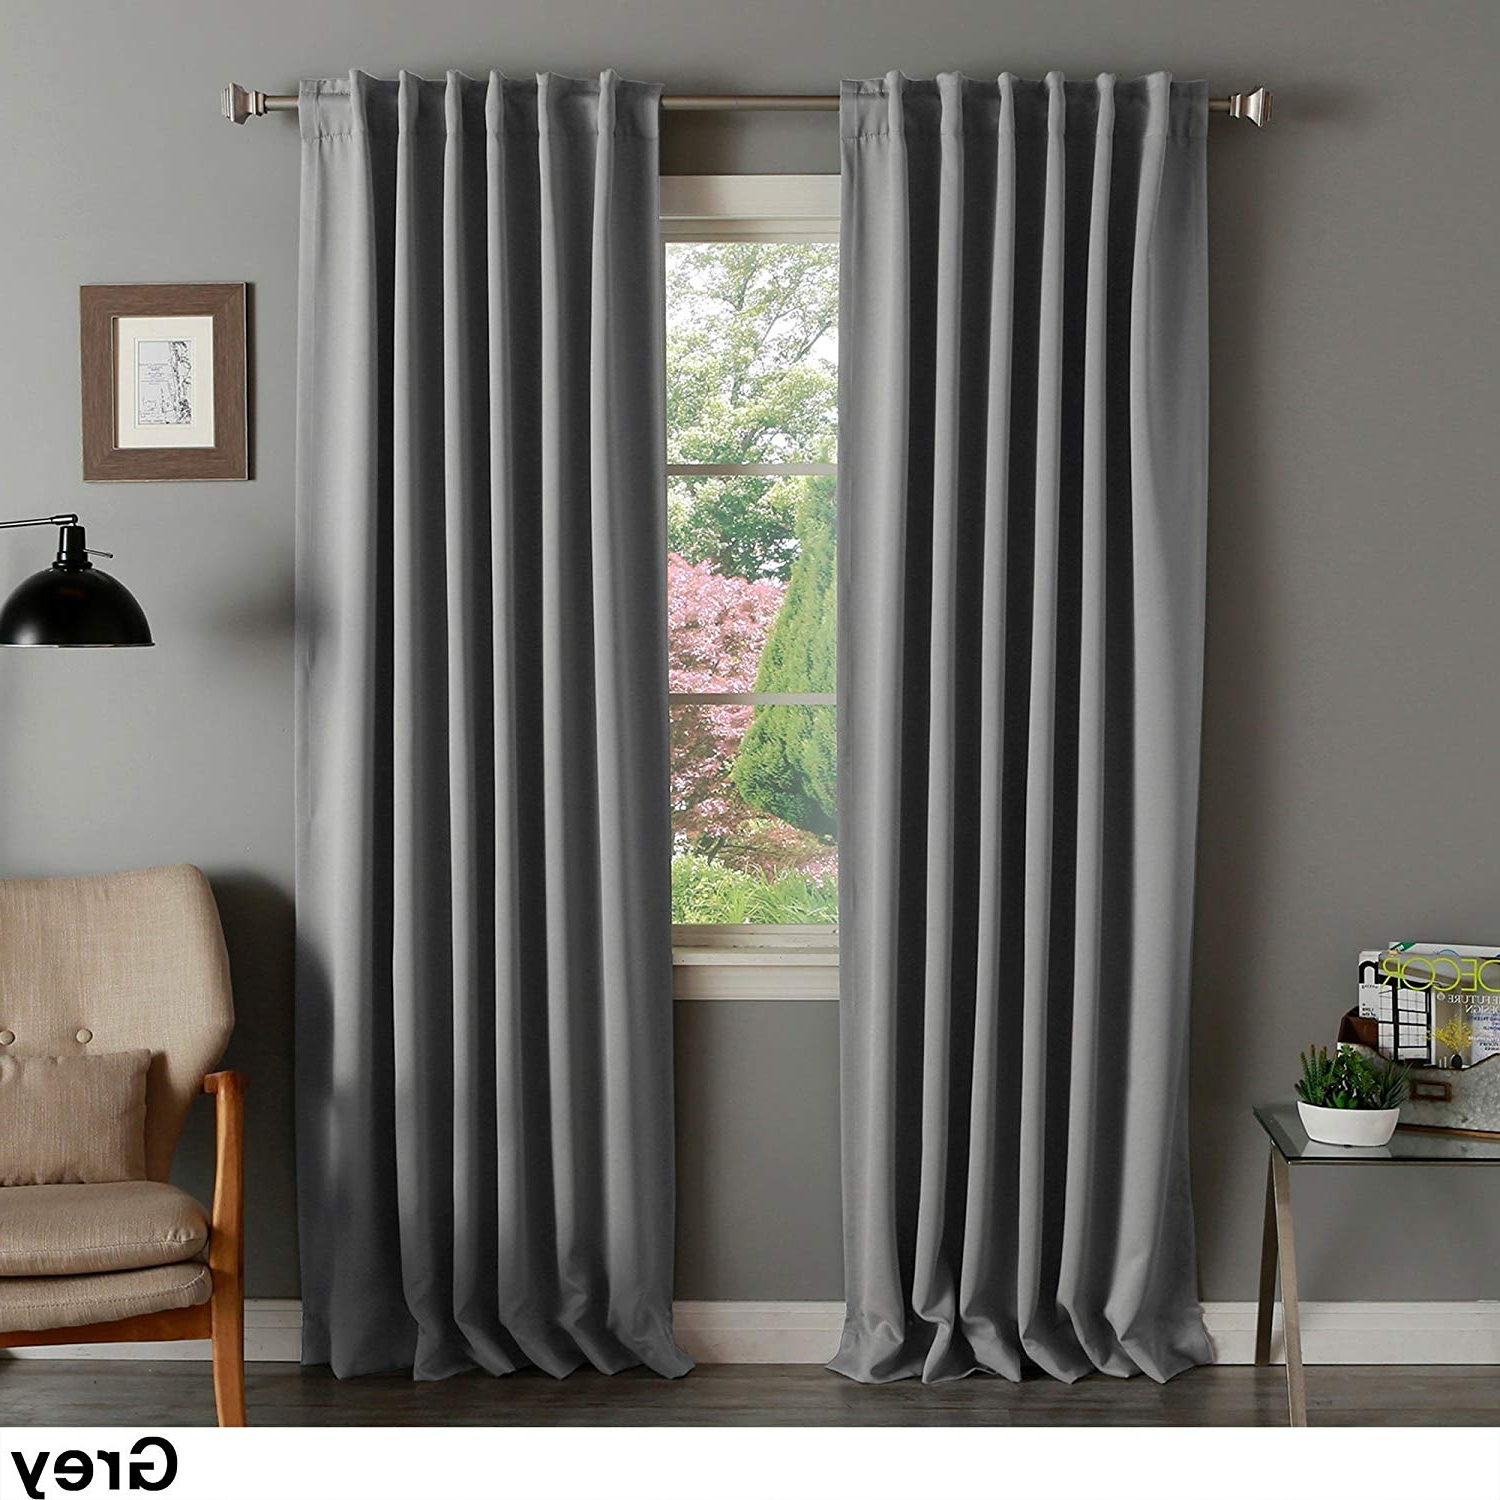 Amazon: Aurora Home Solid Thermal Insulated 108 Inch Pertaining To Preferred Solid Thermal Insulated Blackout Curtain Panel Pairs (View 10 of 20)